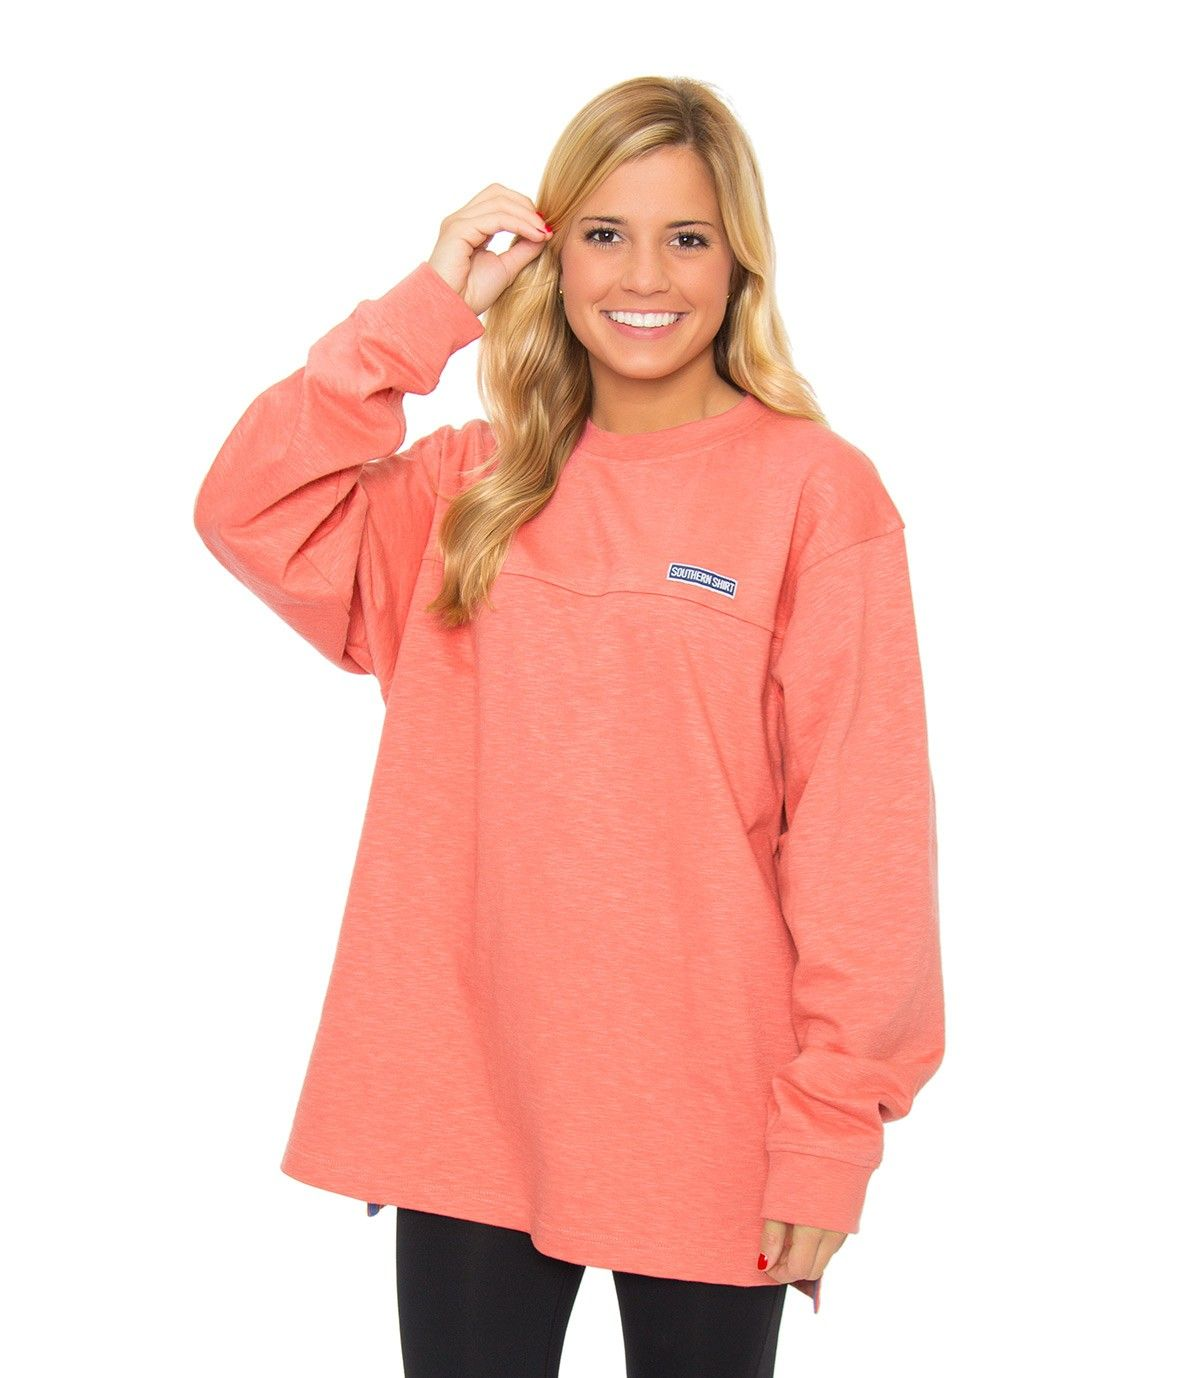 DearSouthernShirt - Cotton Club Pullover - New Arrivals - Shop ...